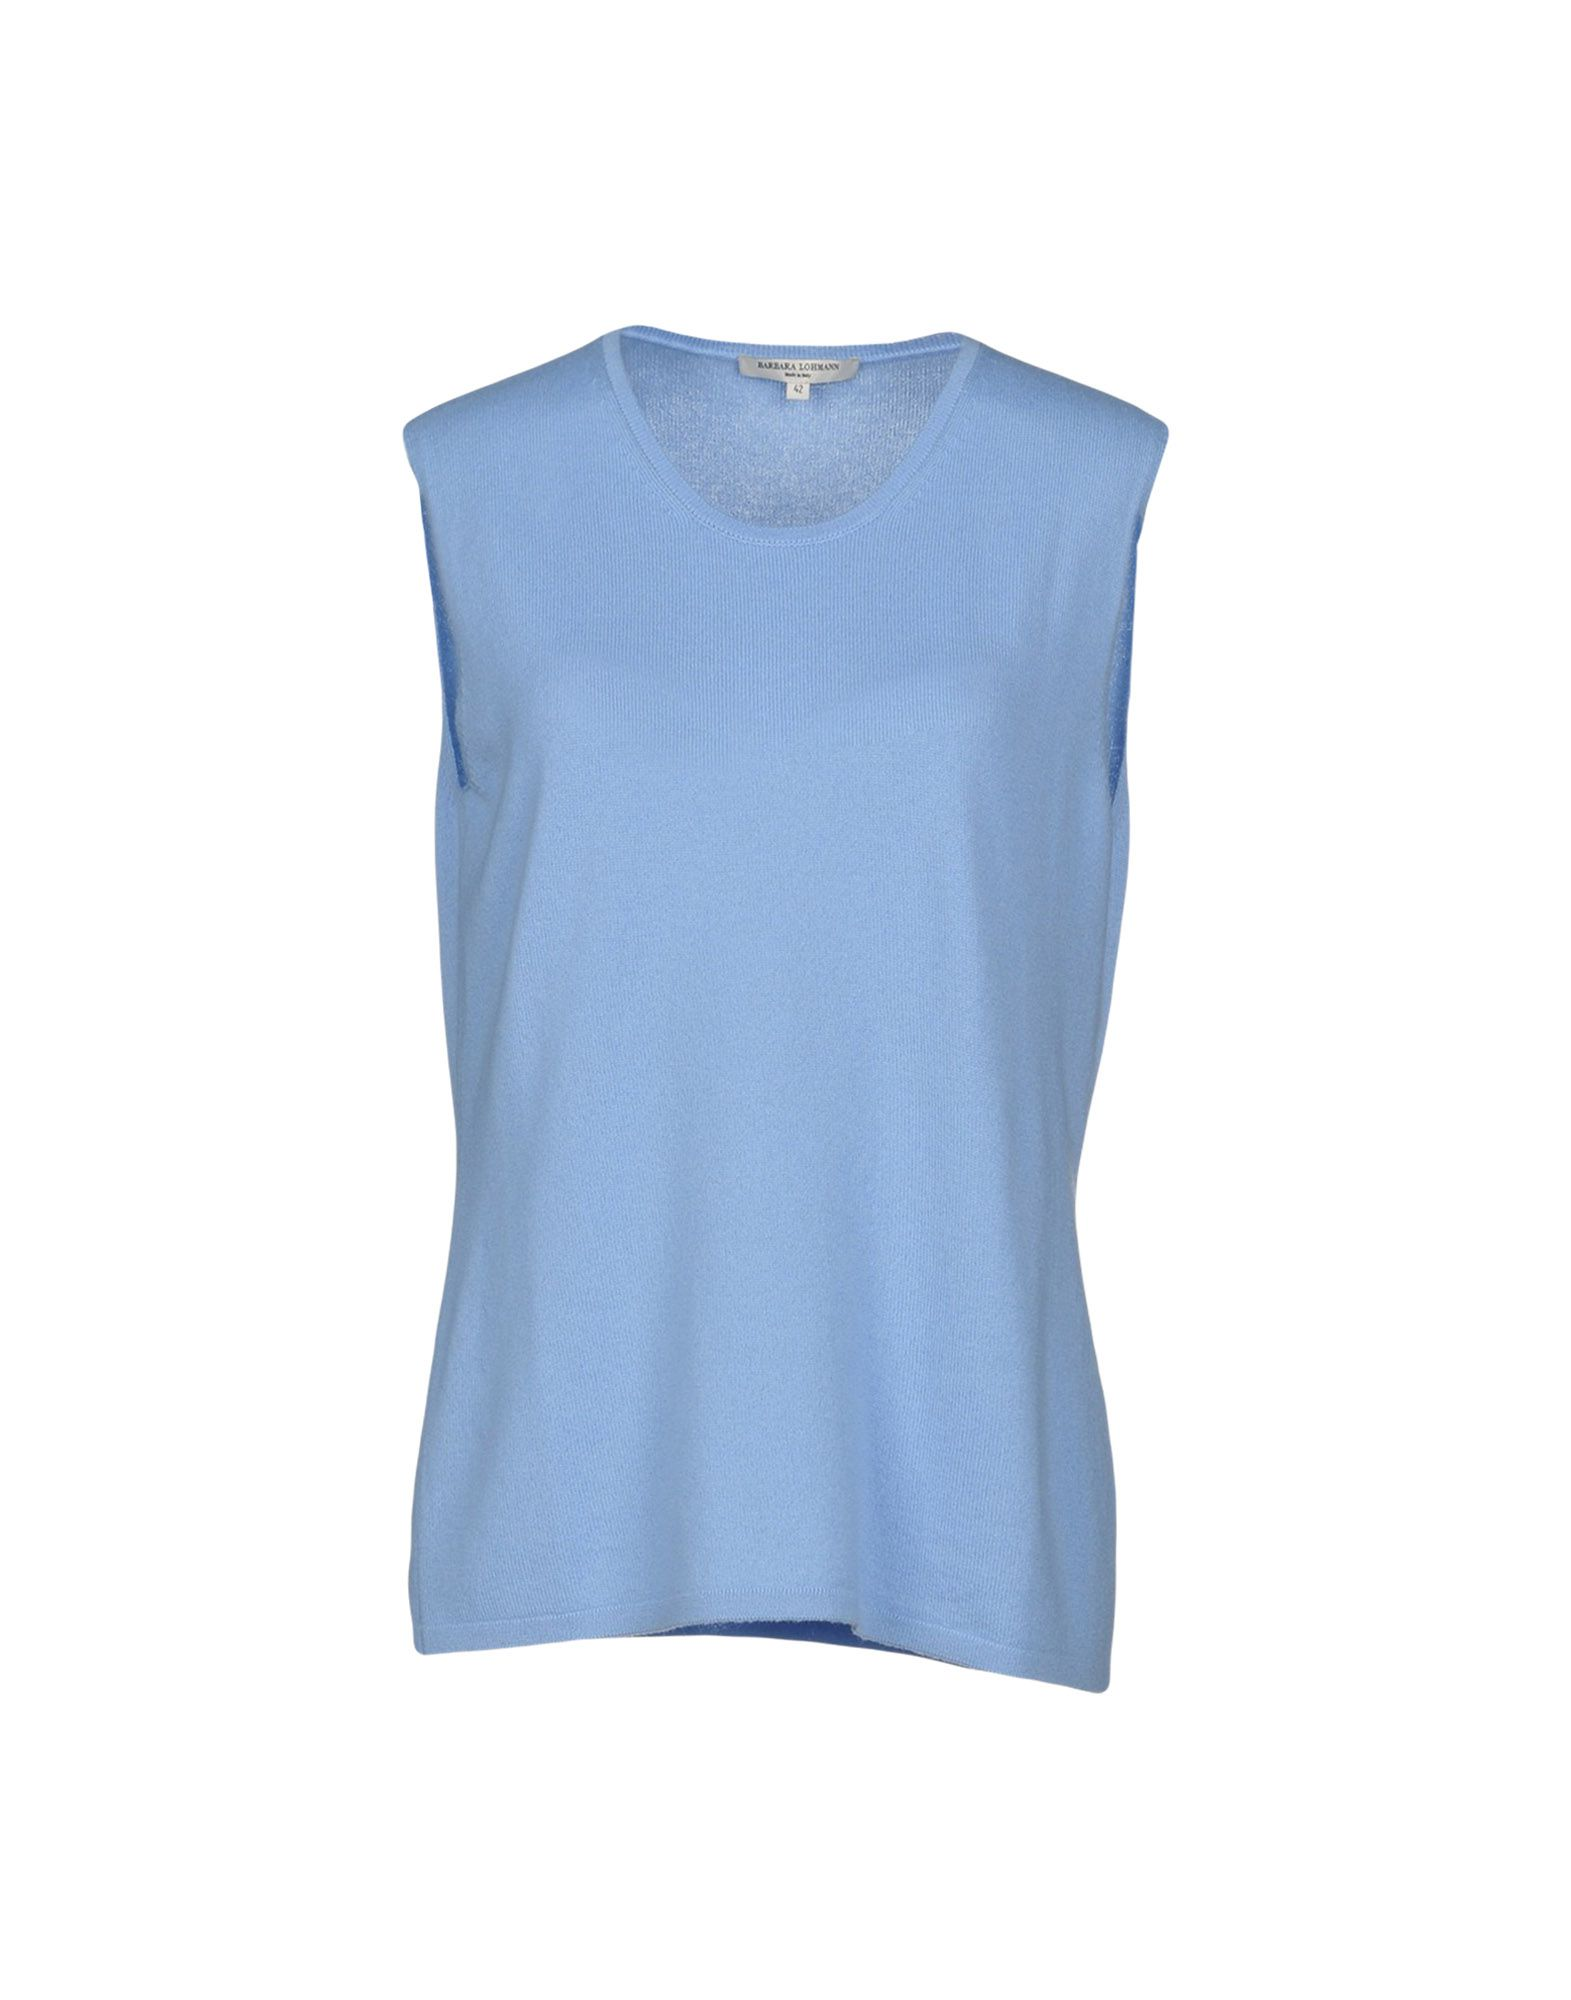 BARBARA LOHMANN Cashmere Blend in Sky Blue